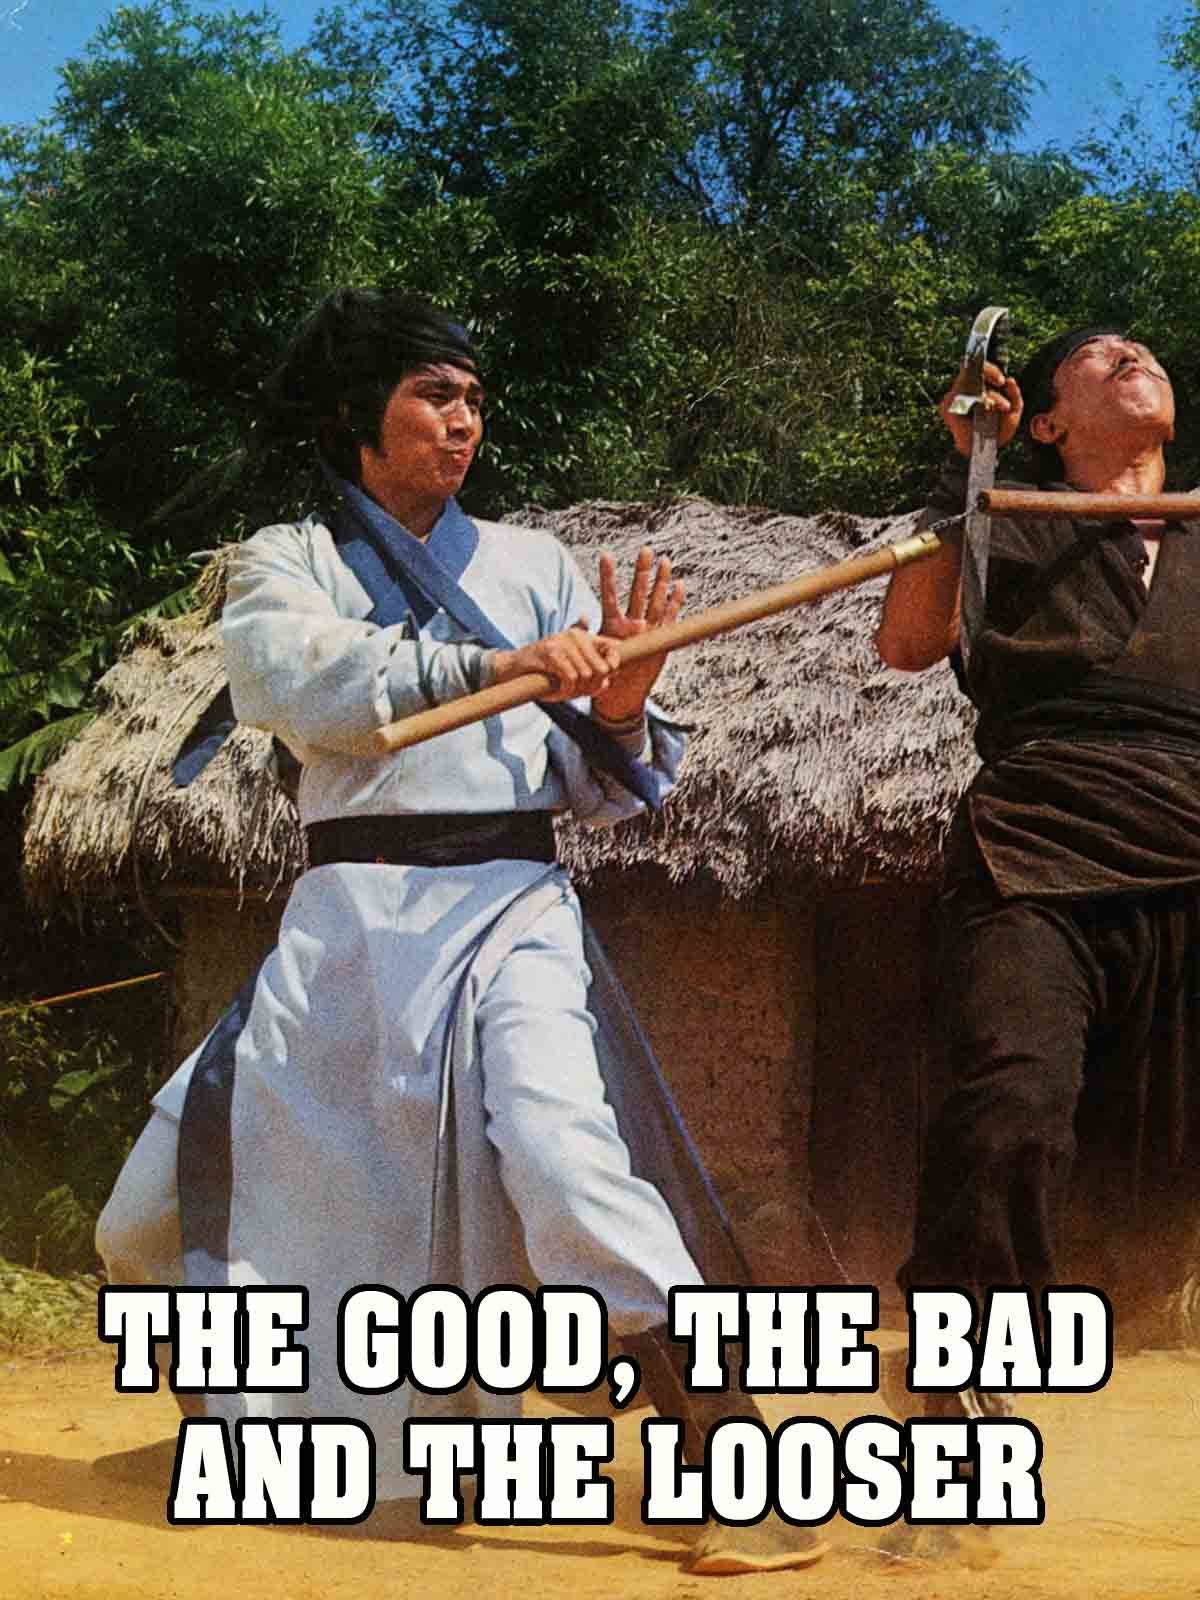 The Good The Bad The Looser